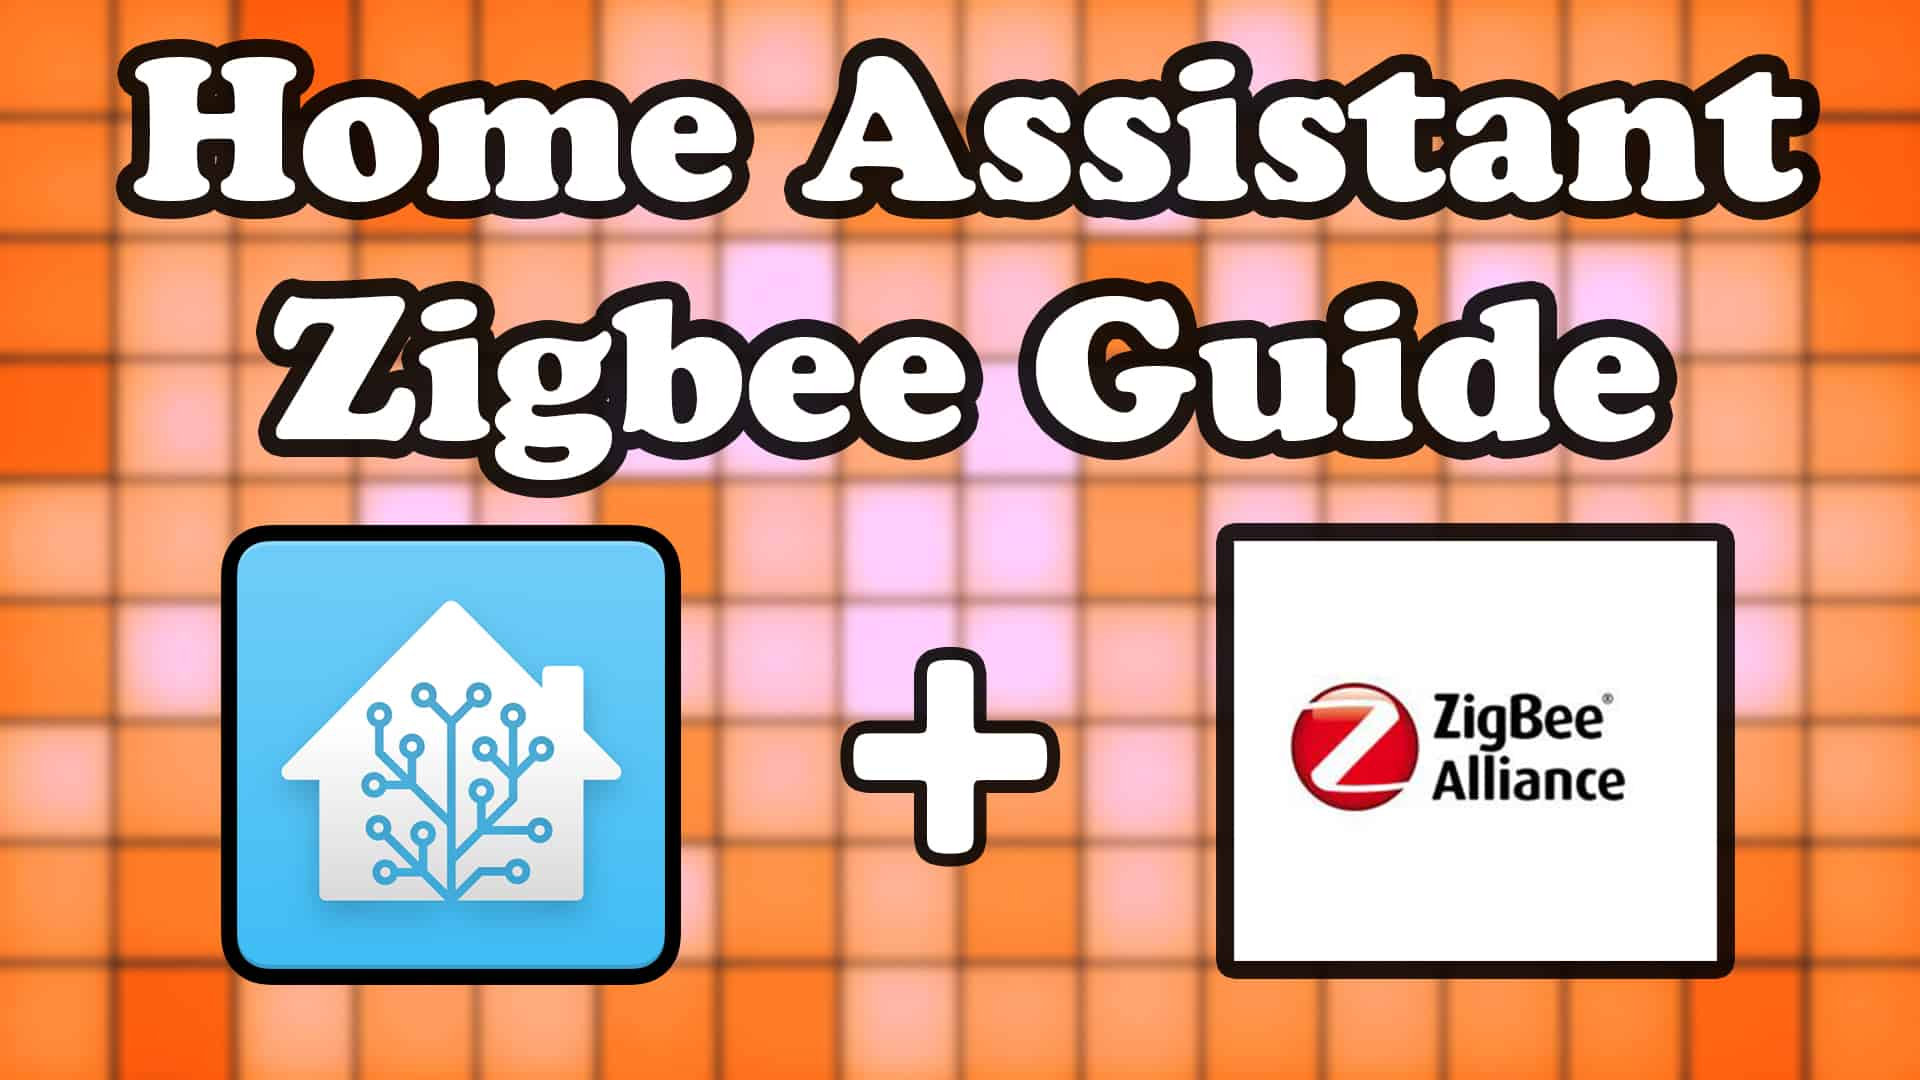 Adding Zigbee to Home Assistant - Tech Tech & More Tech